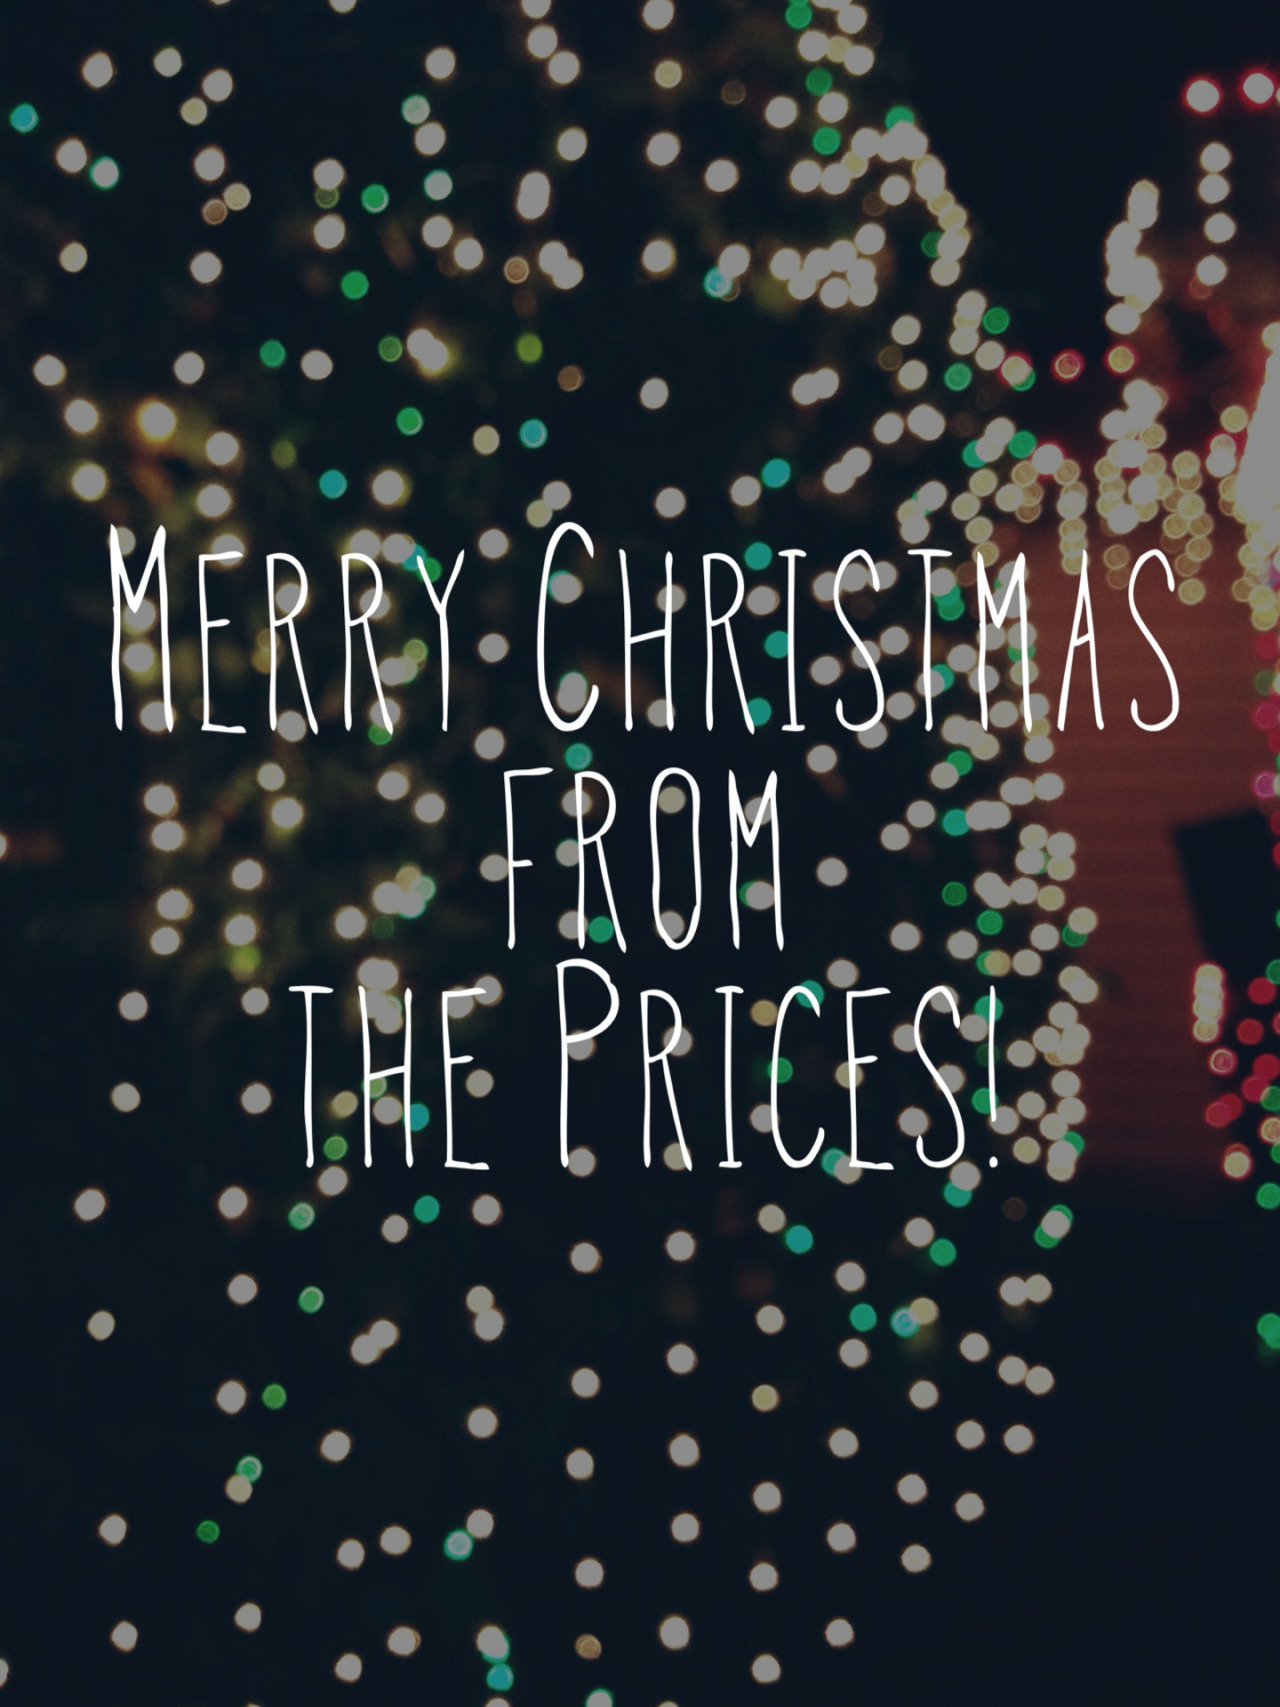 Merry Christmas from the Prices!